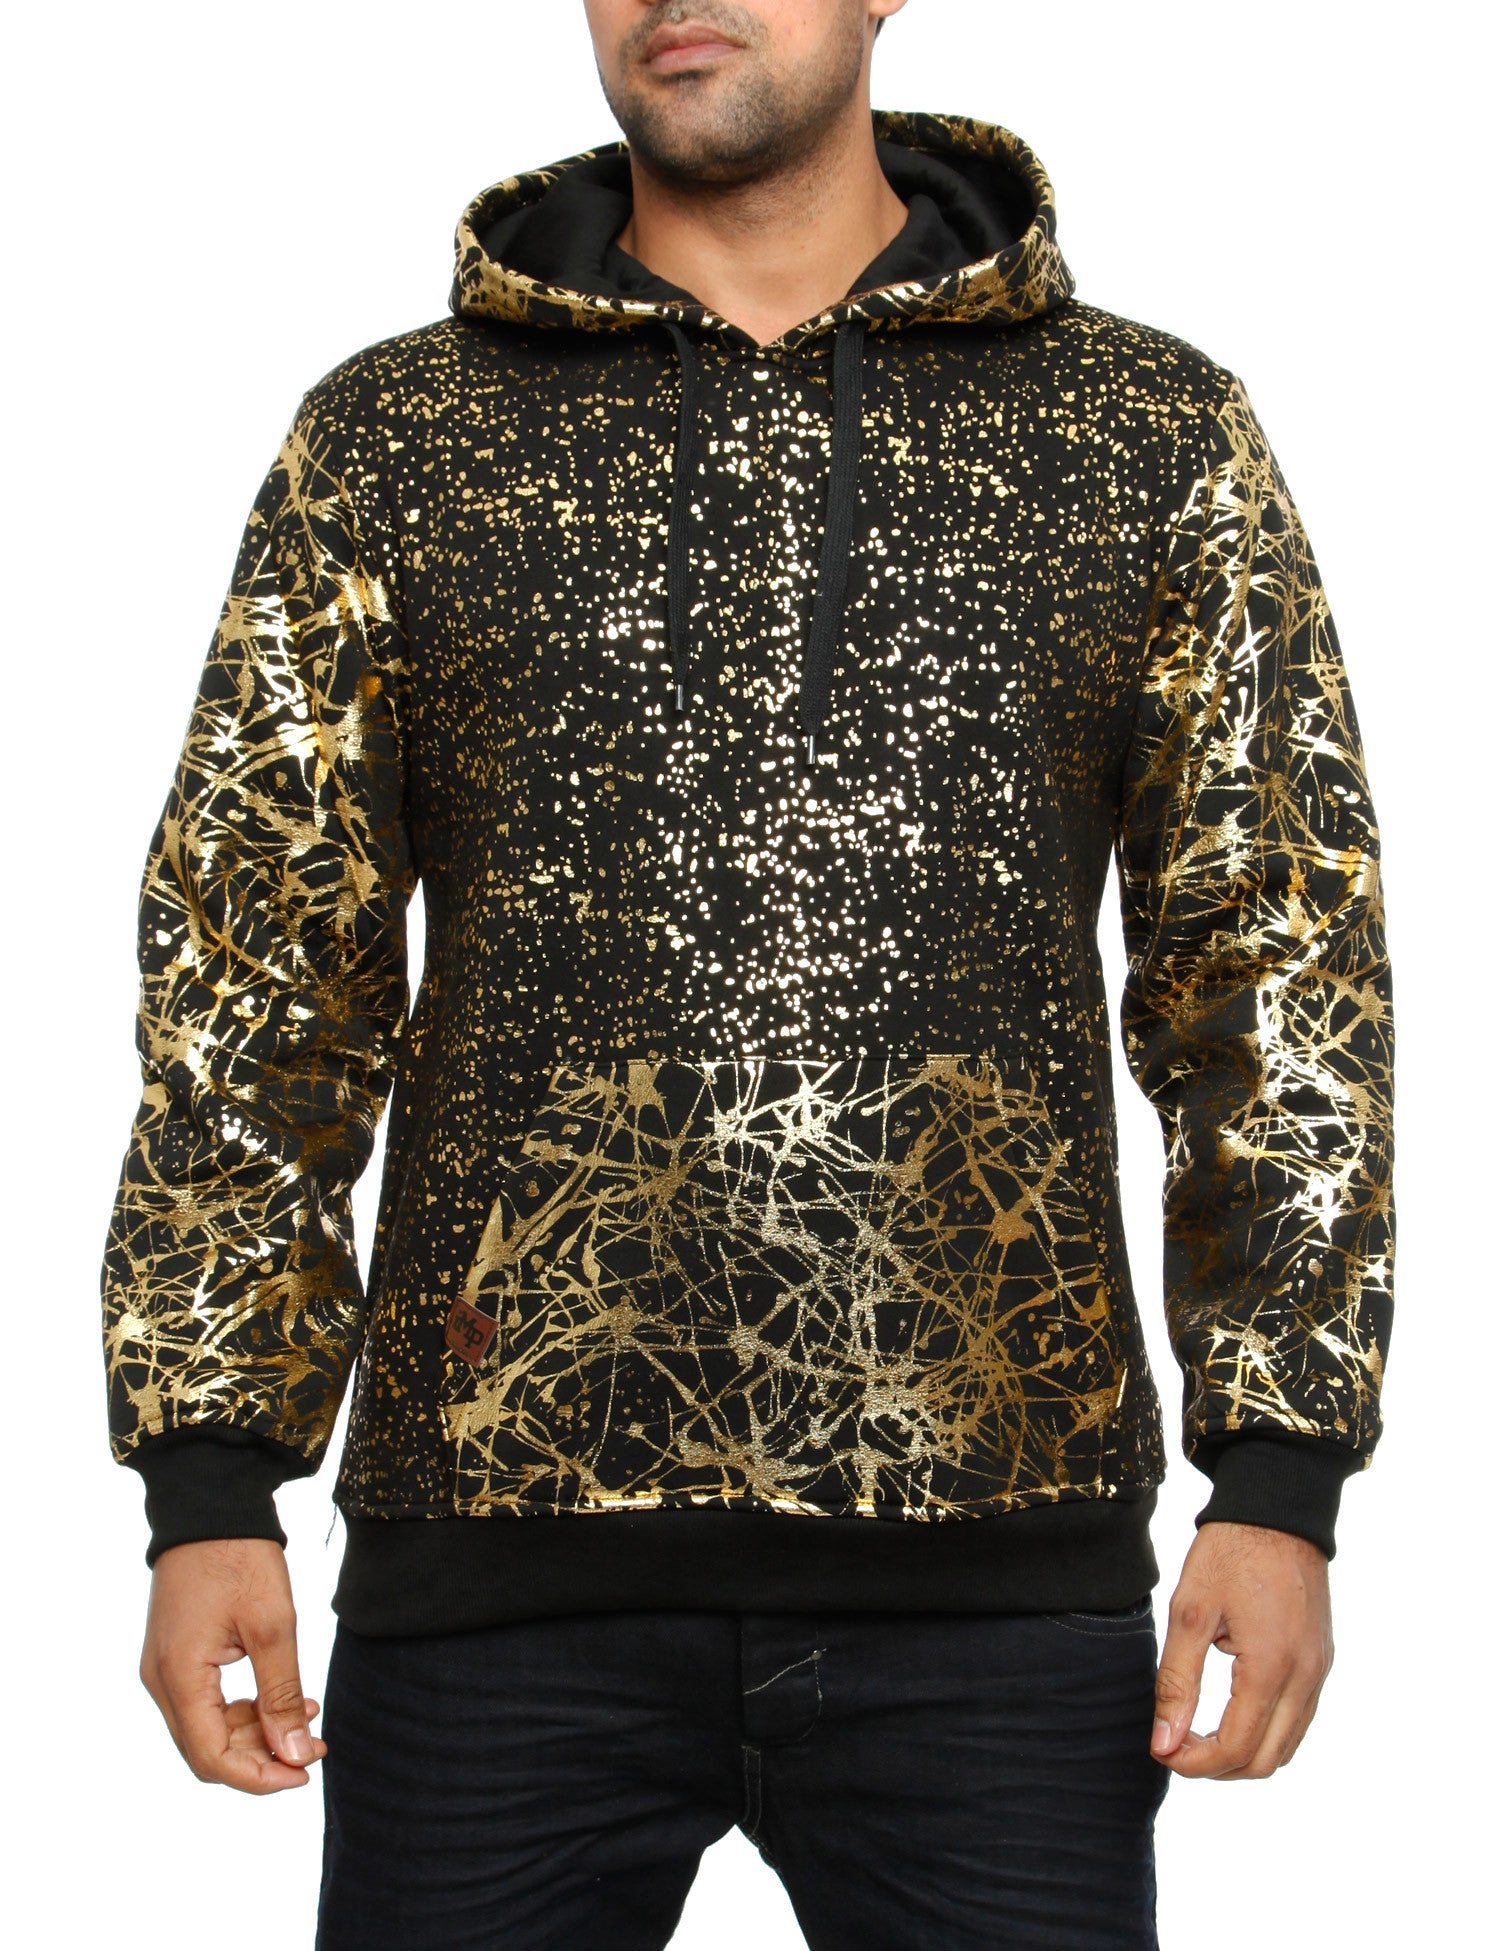 Imperious ?Gold Splatter? Hoody HS549 Black